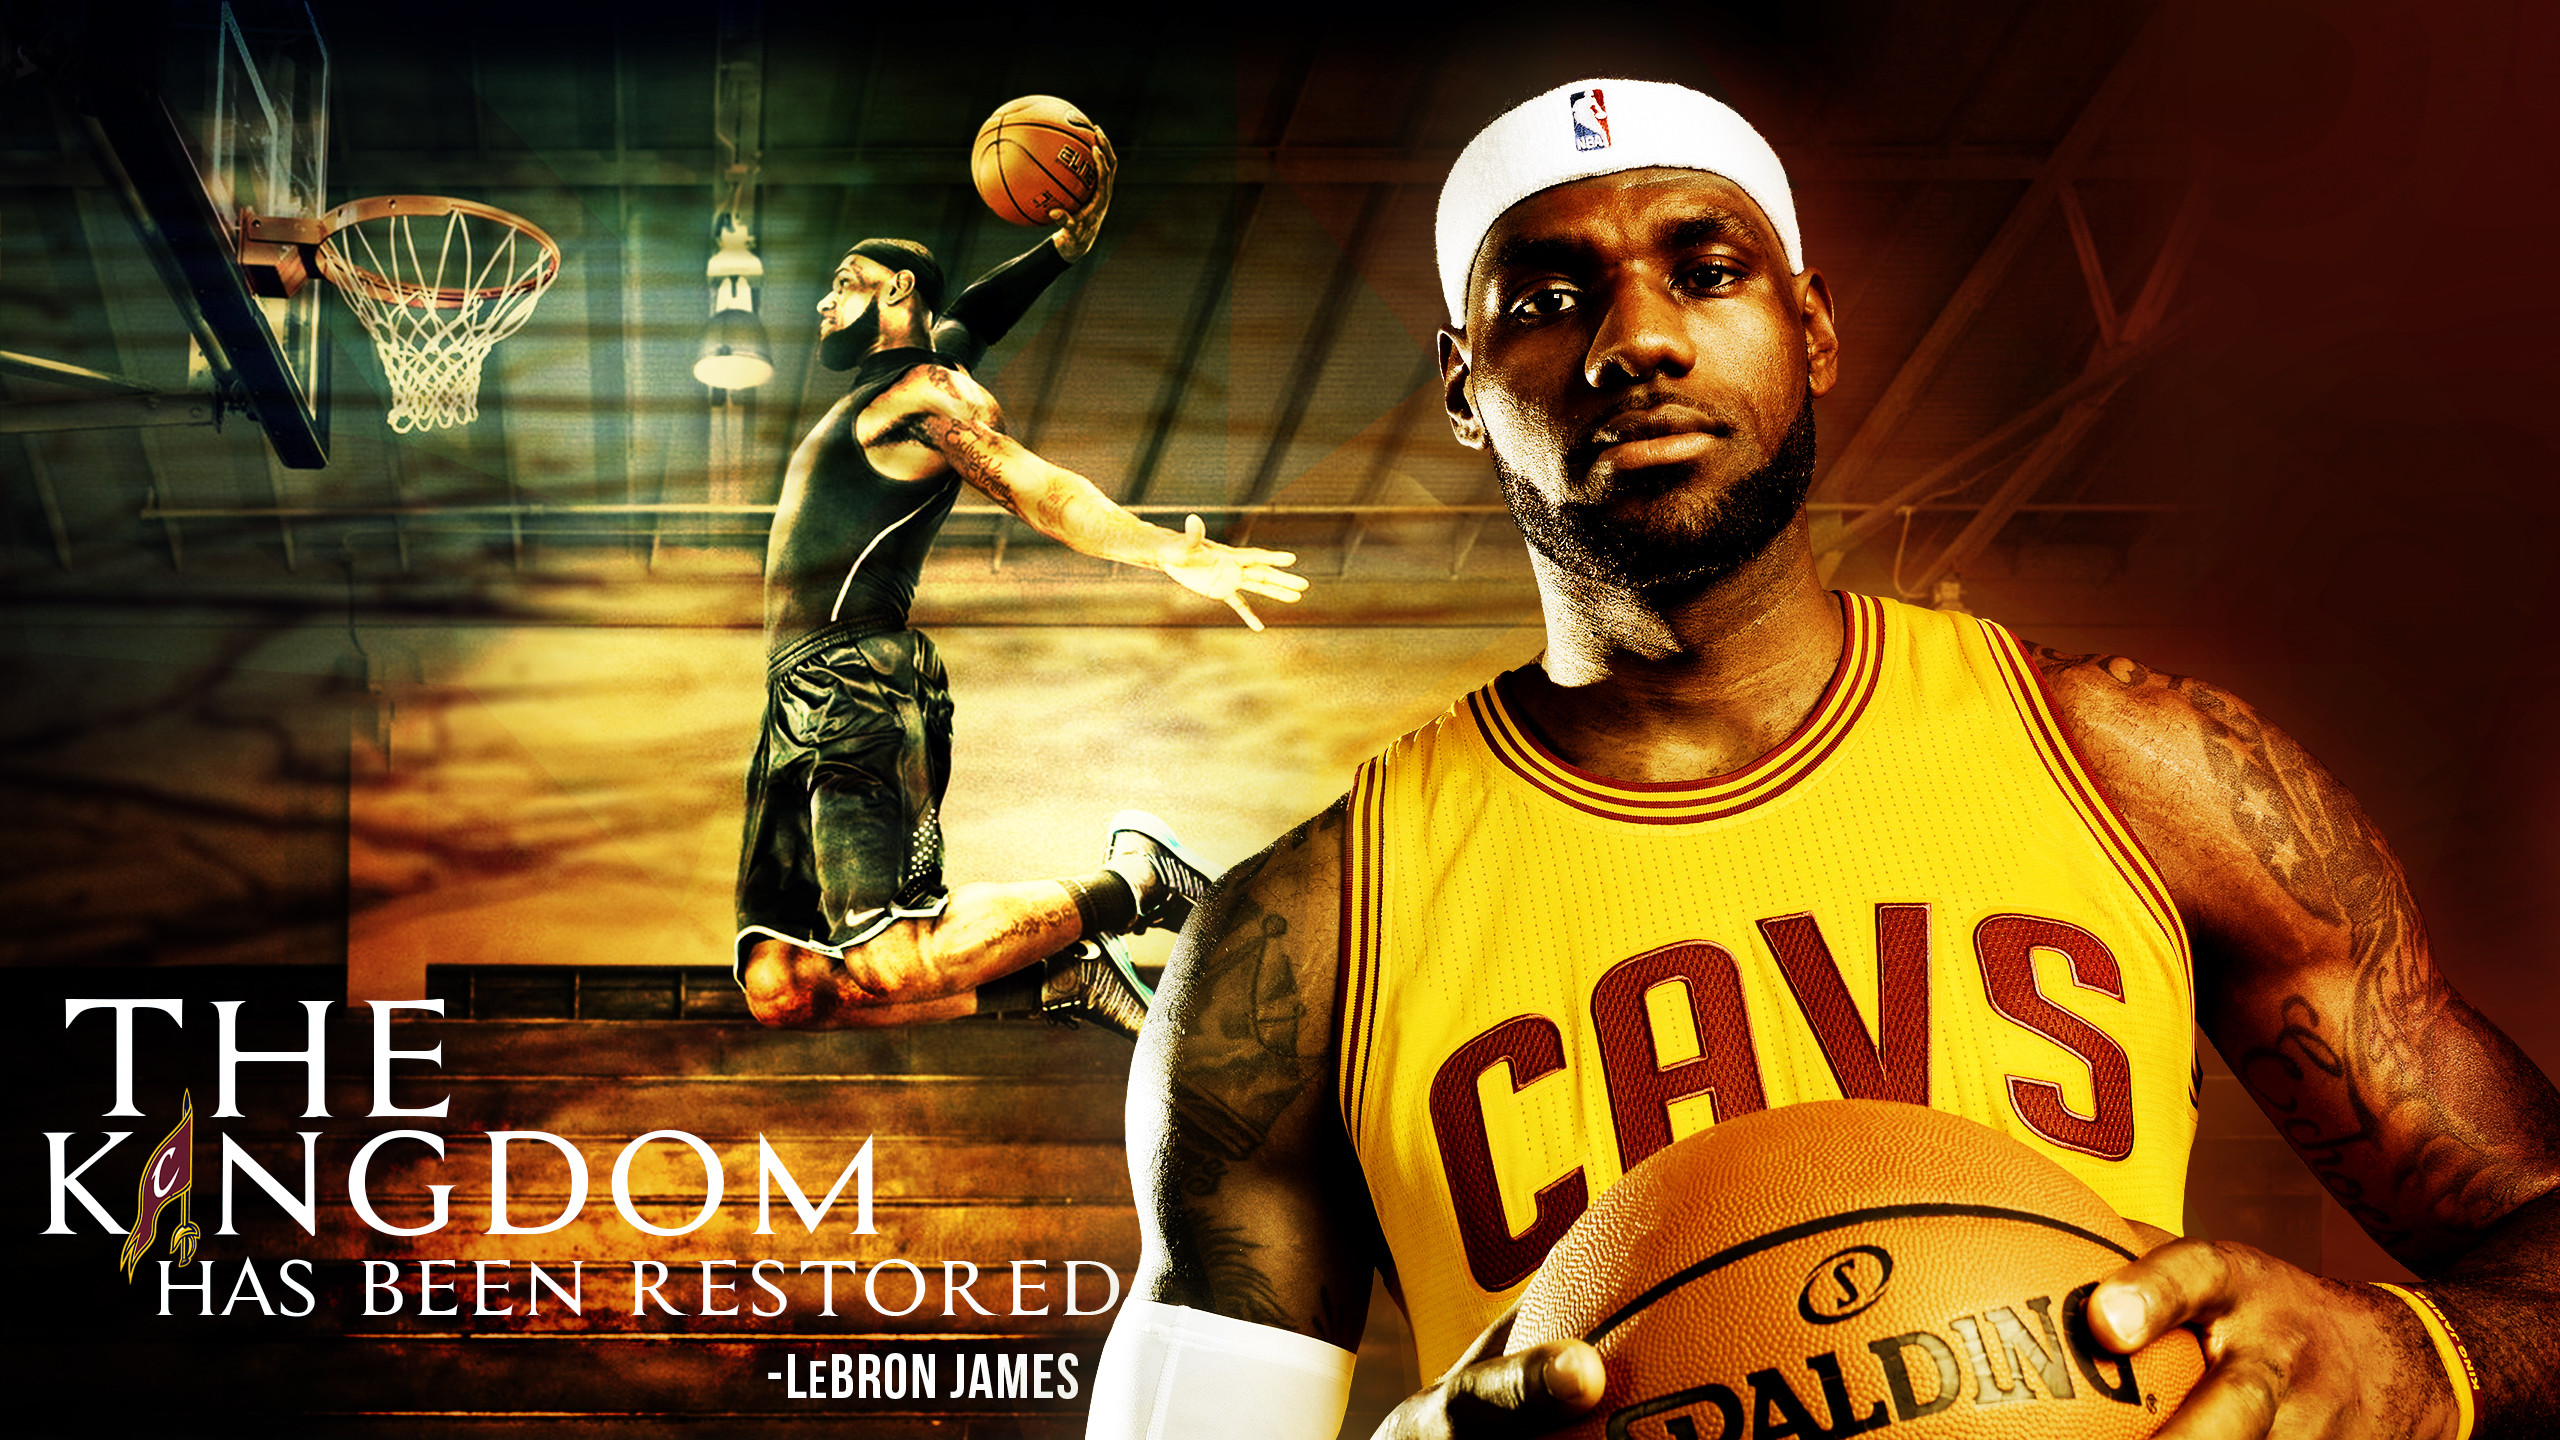 Download Sweet Quotes Wallpapers Nba Wallpapers Lebron James 2018 77 Images